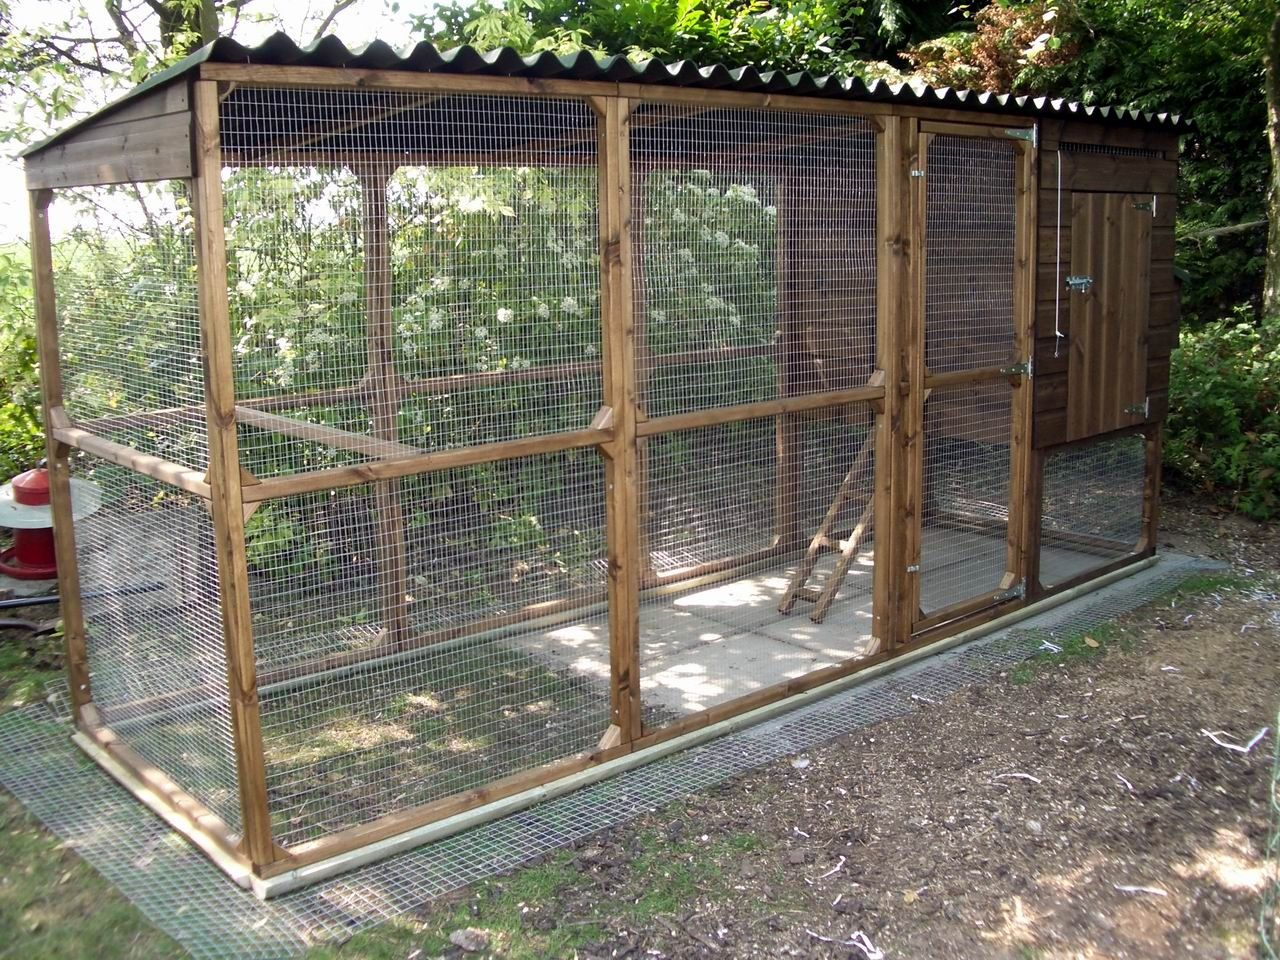 Chicken coop pictures chicken coop designs chicken runs for Poultry house plans for 100 chickens